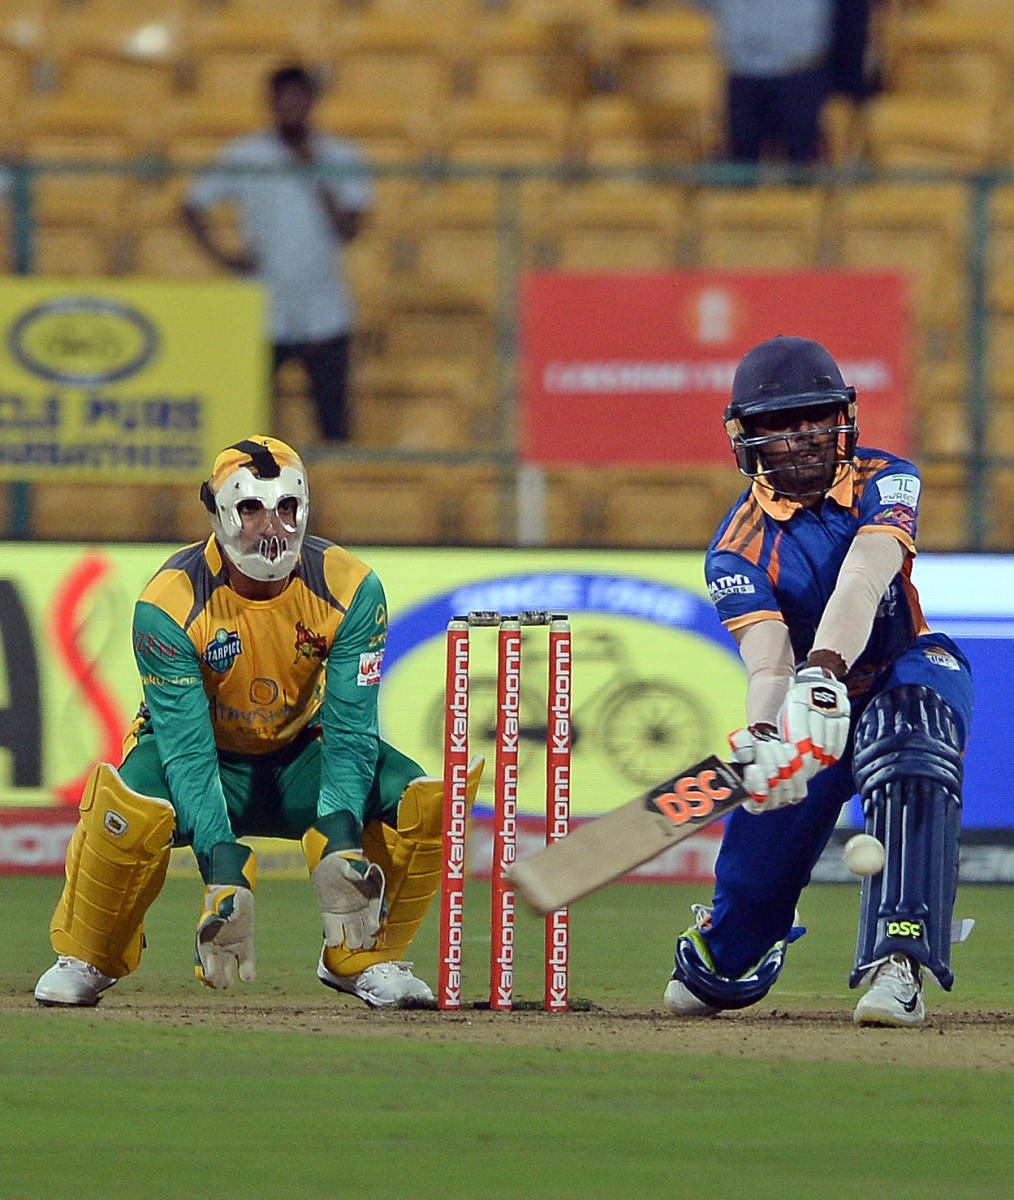 SOLID Hubli Tigers will pin their hopes on Mohammad Taha (right) to get them off to a good start when they face Shivamogga Lions on Sunday. DH FILE PHOTO